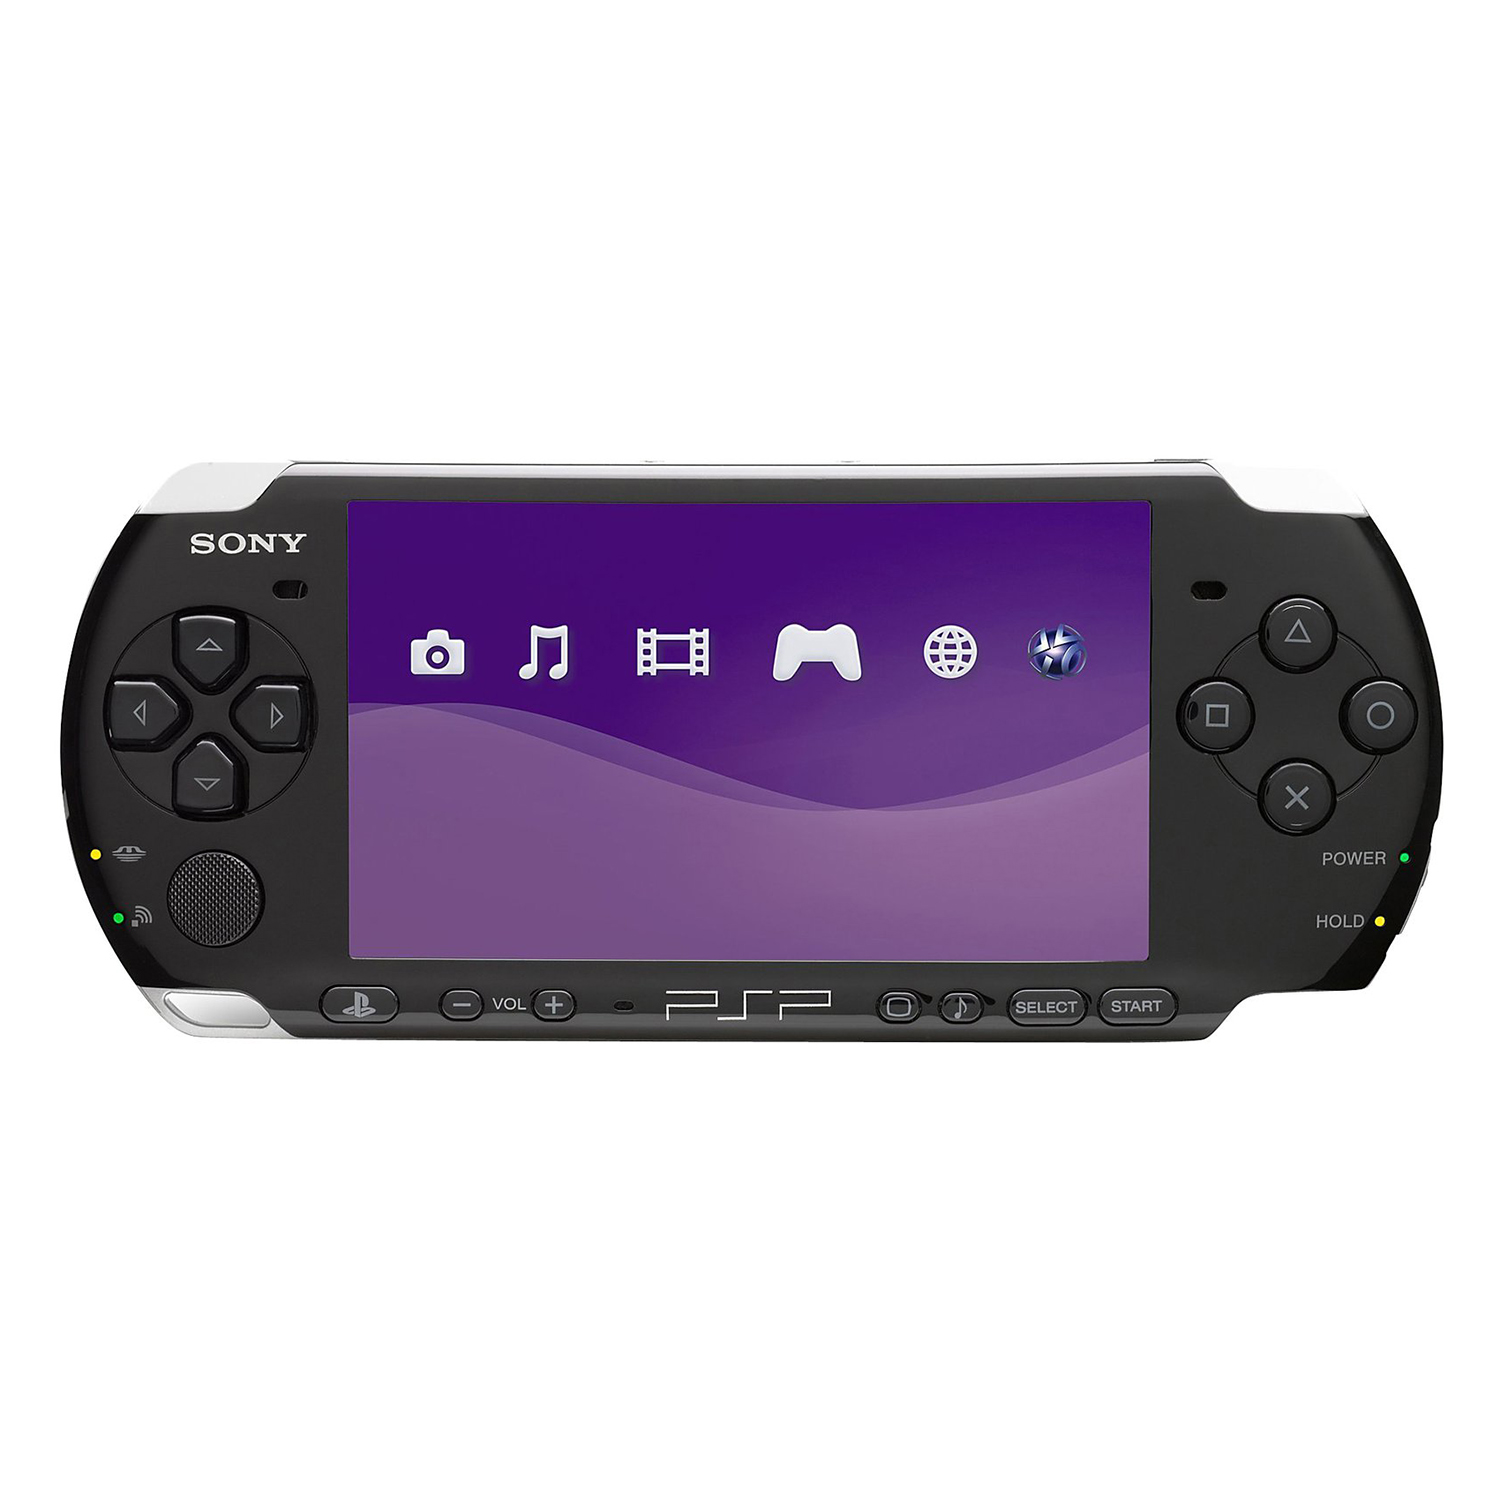 Sony PlayStation Portable (PSP) 3000 Series Handheld